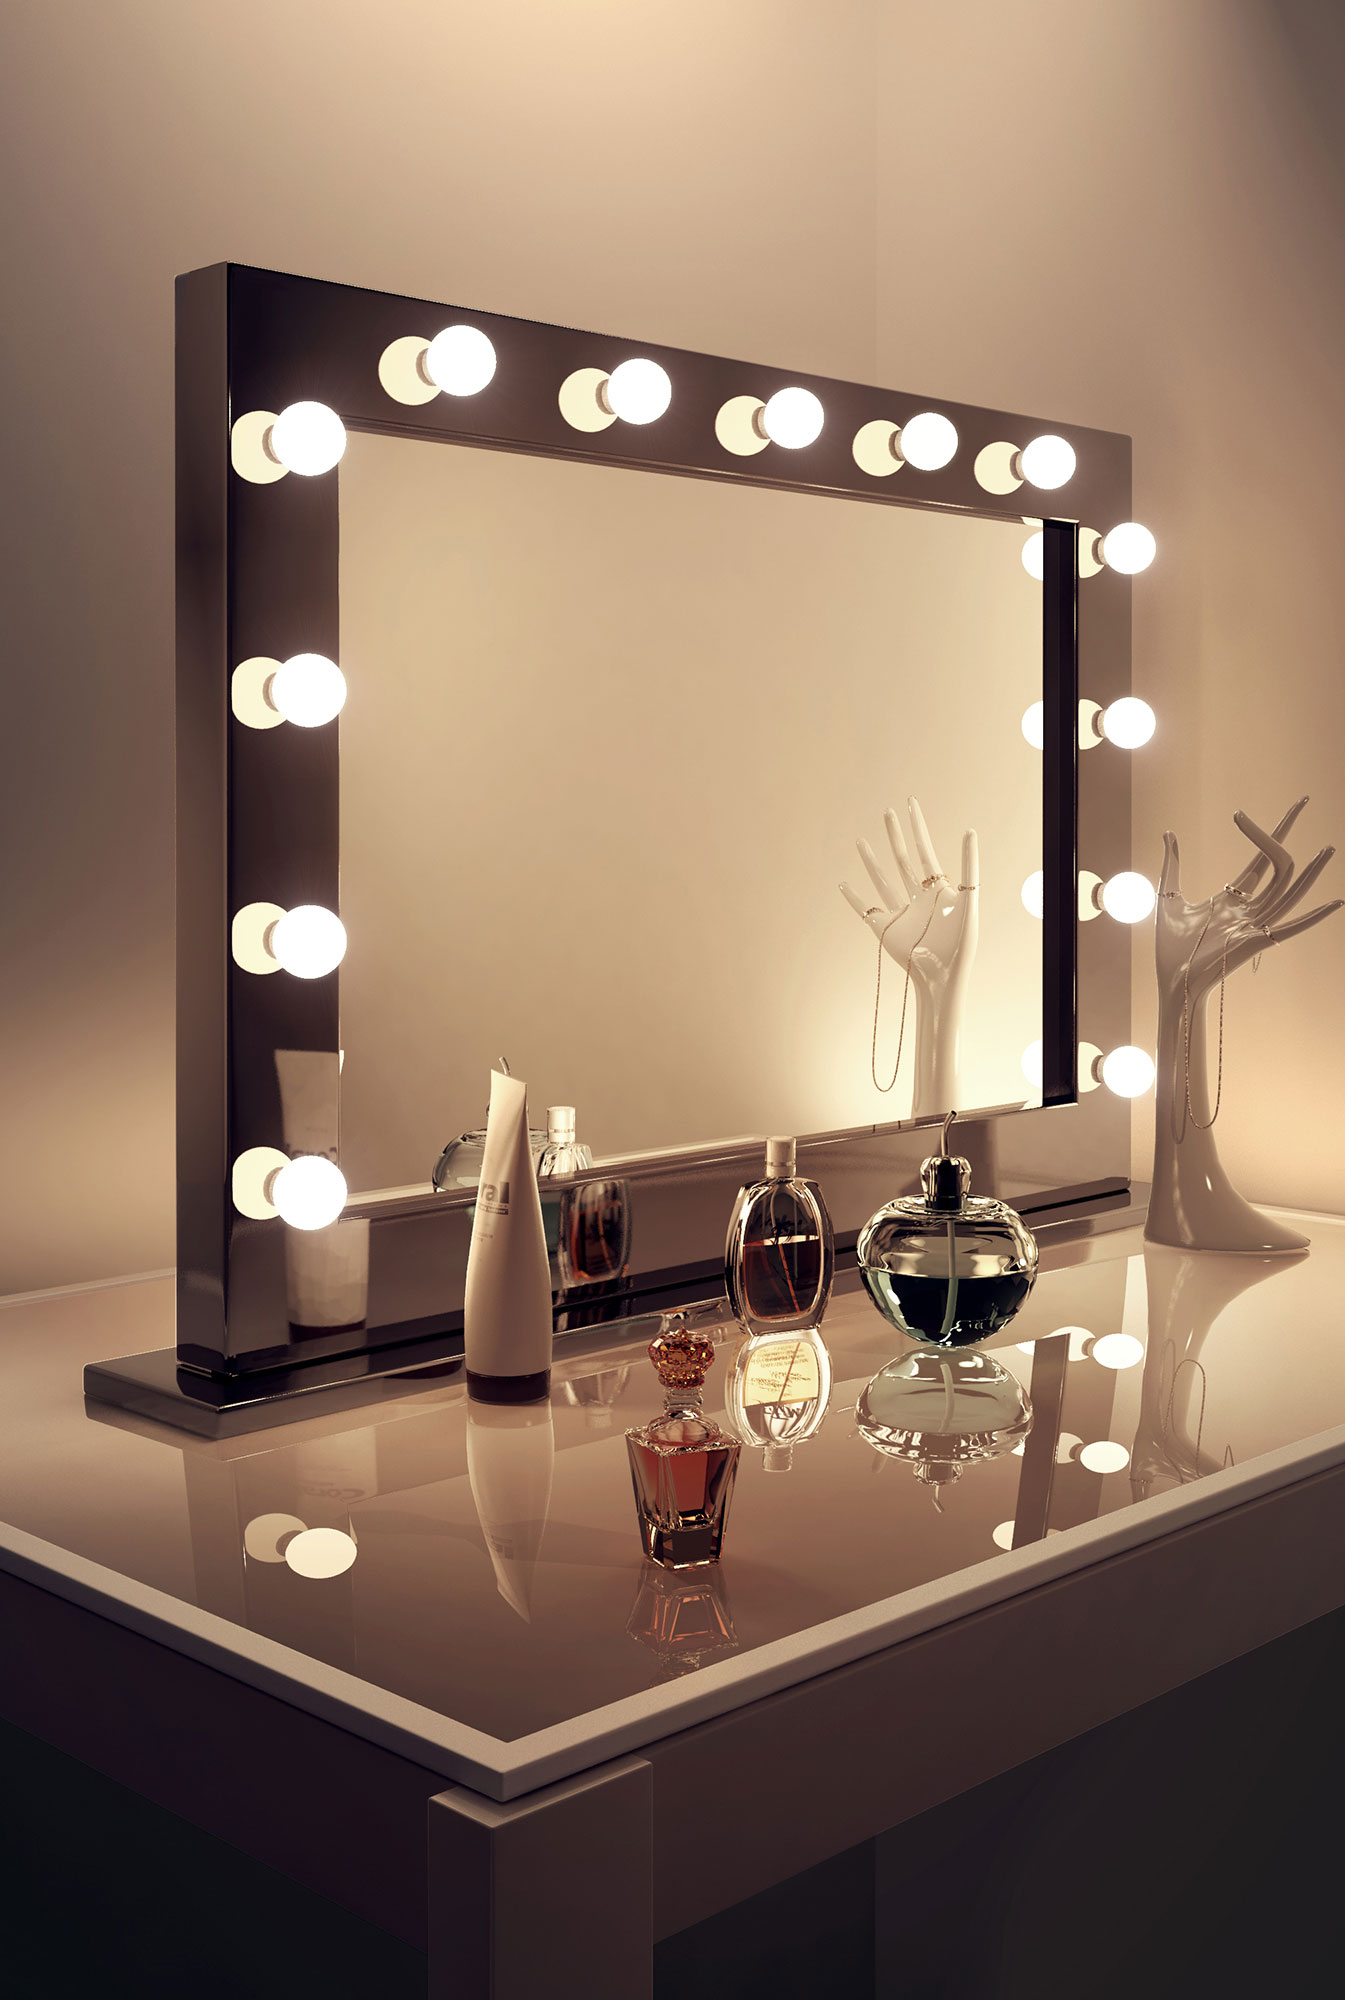 Lighted Vanity Mirror Hollywood | Hollywood Vanity Mirror with Lights | Makeup Vanity Mirror with Lights